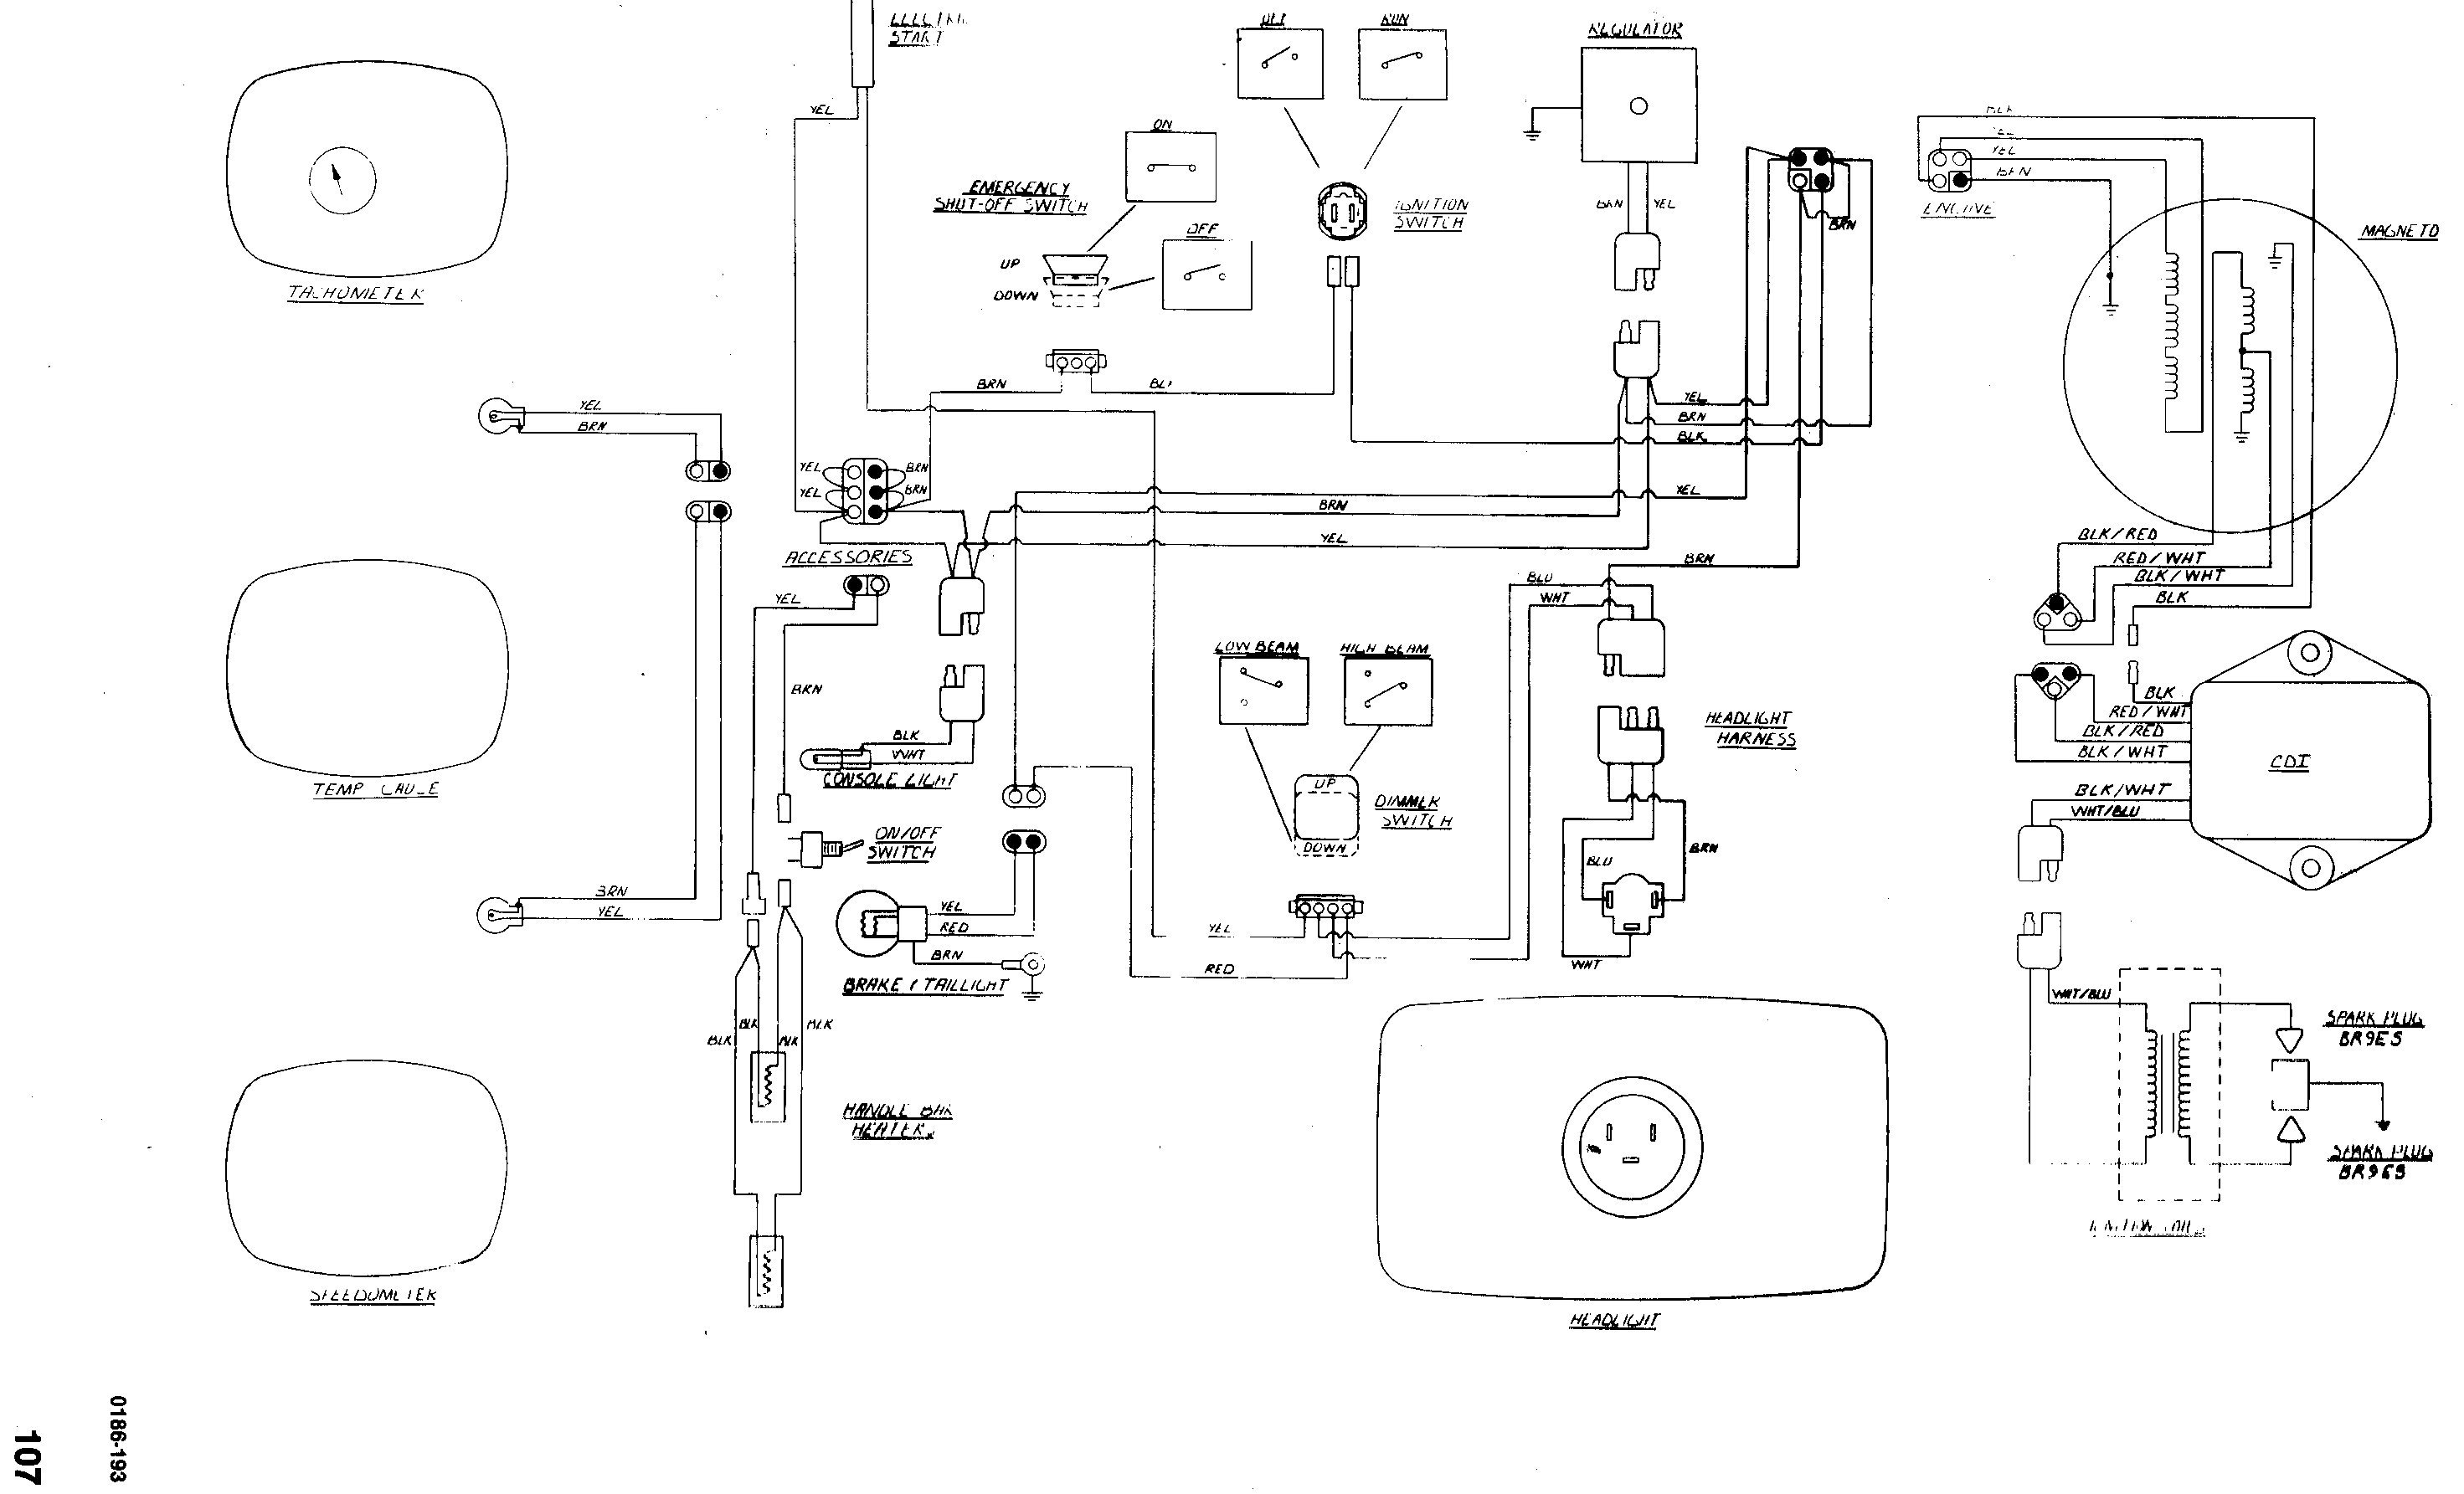 2003 Arctic Cat Atv 500 Wiring Diagram. Engine. Wiring